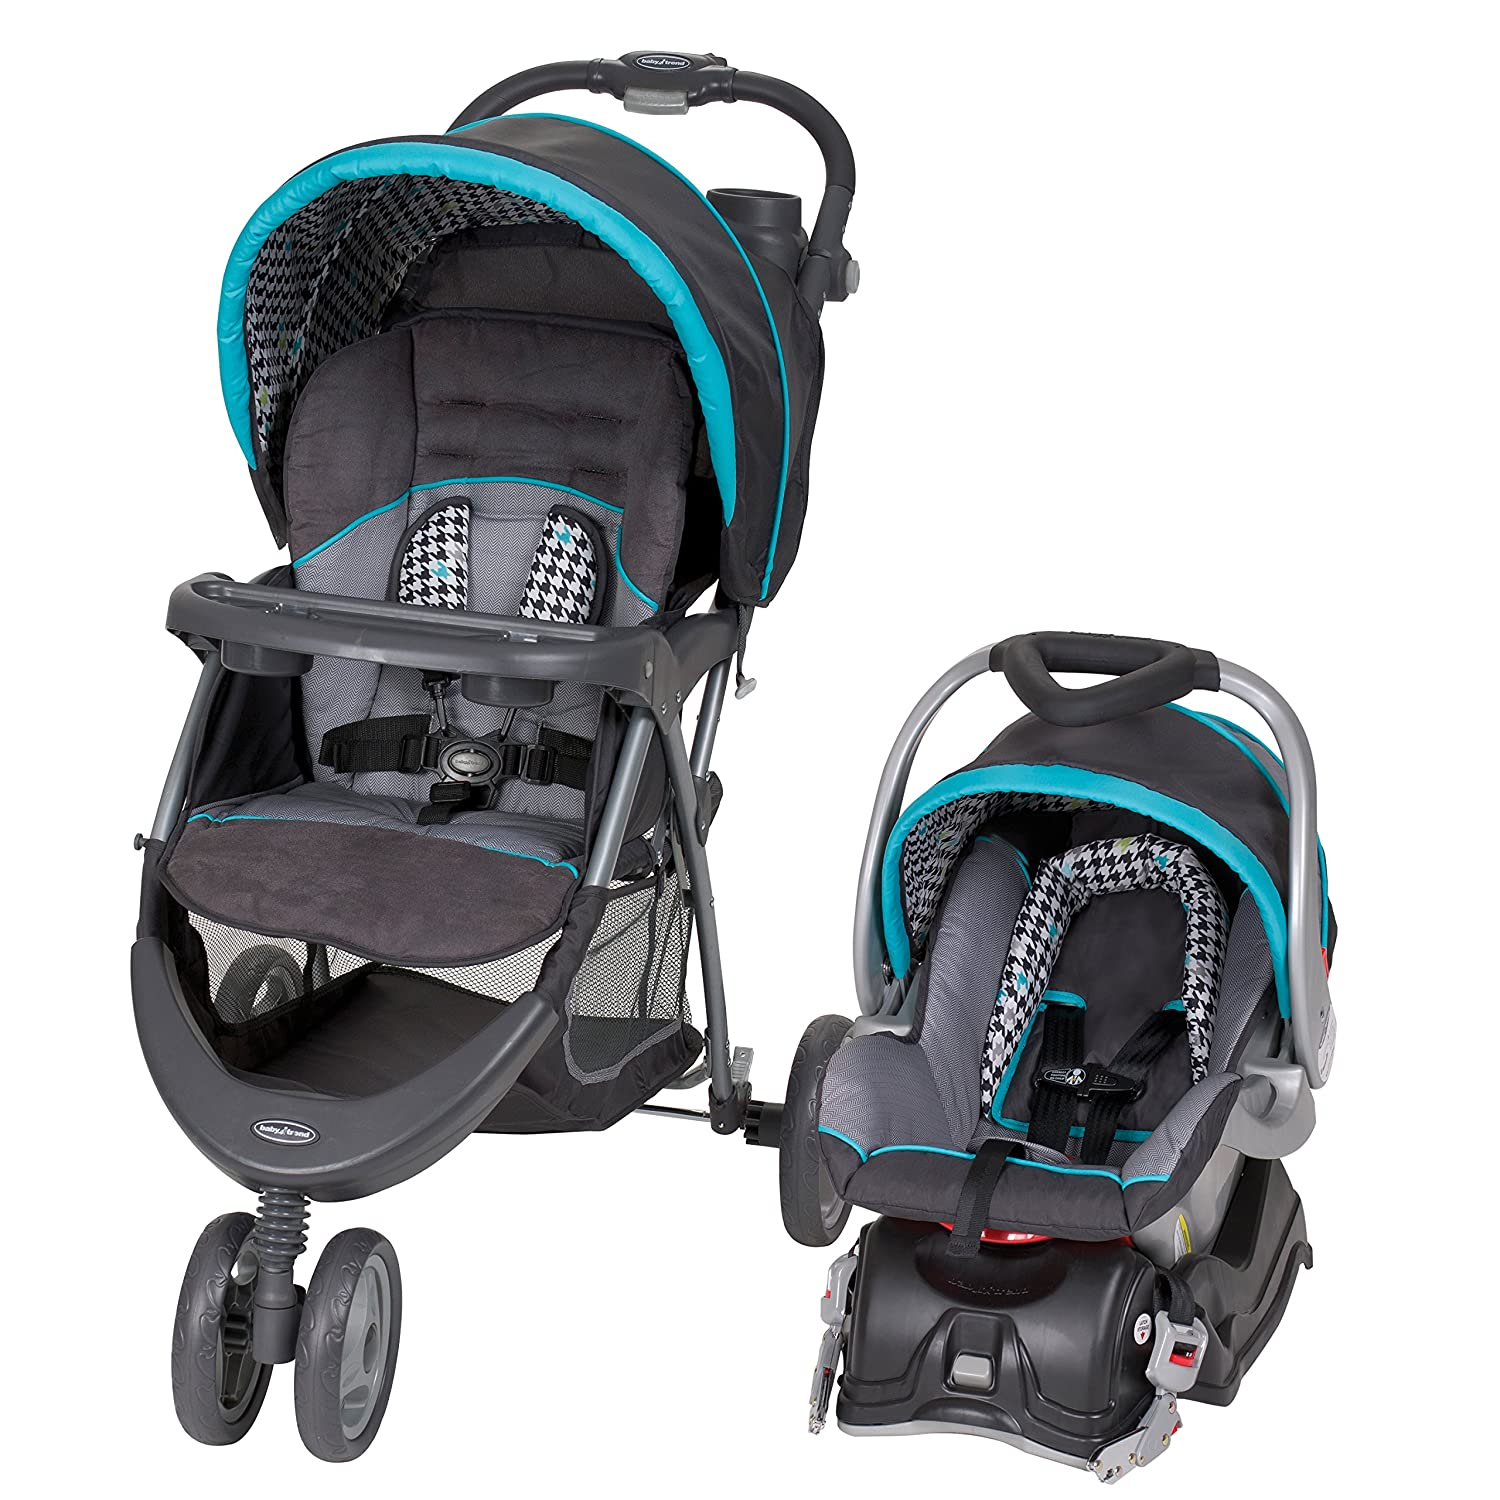 Amazon.com: Travel Systems: Baby Products